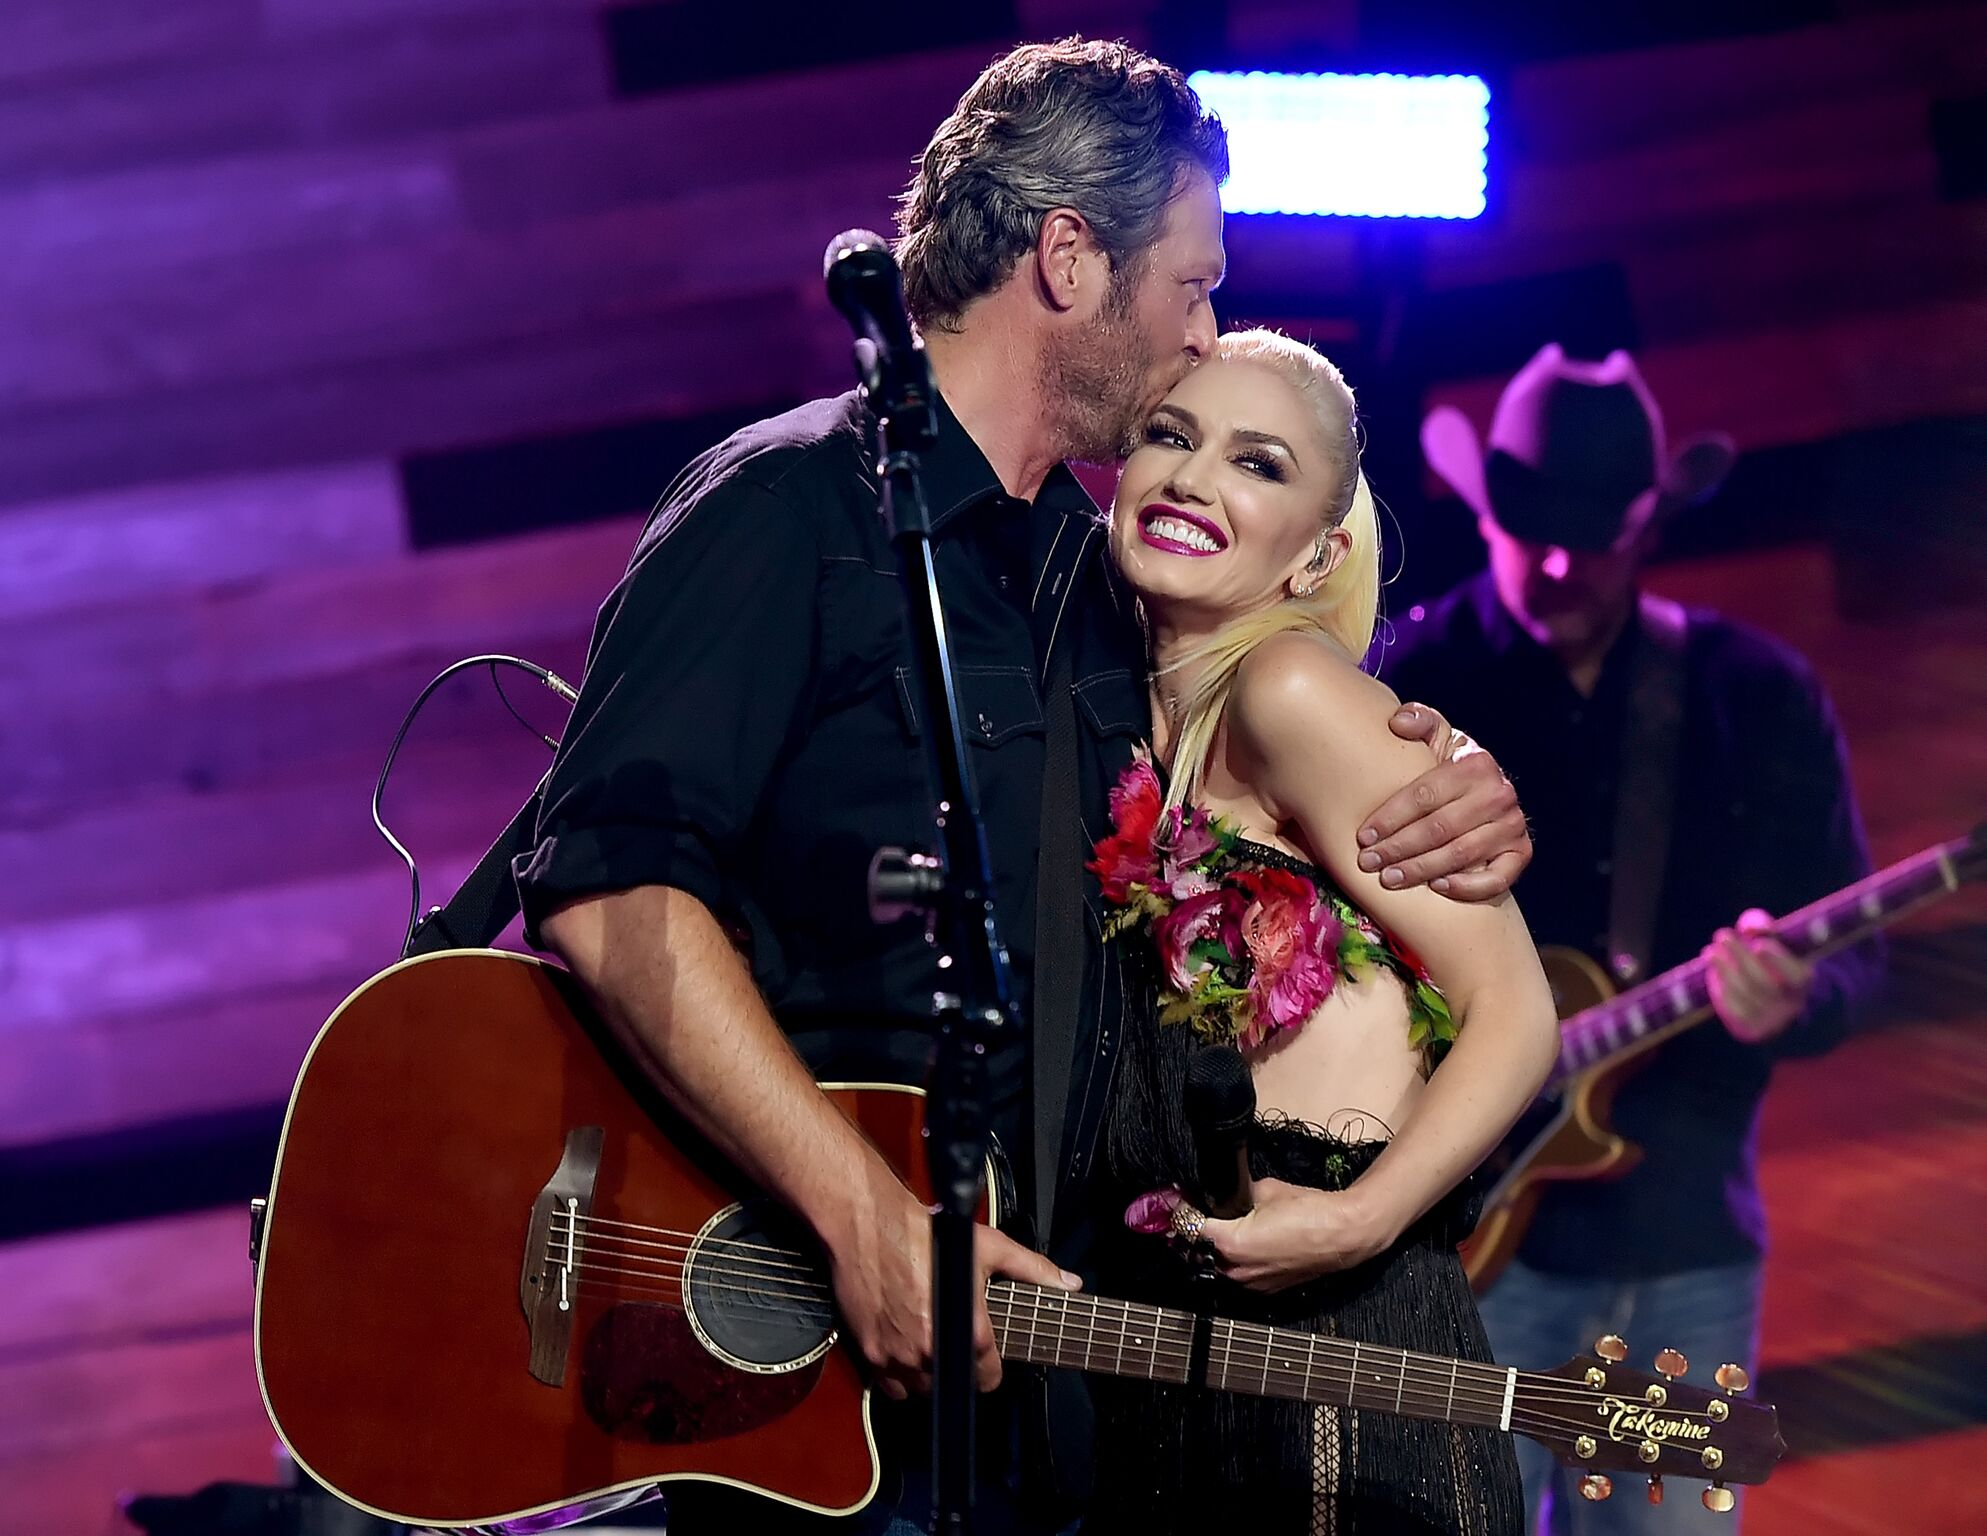 Blake Shelton and Gwen Stefani perform on the Honda Stage at the iHeartRadio Theater | Getty Images / Global Images Ukraine